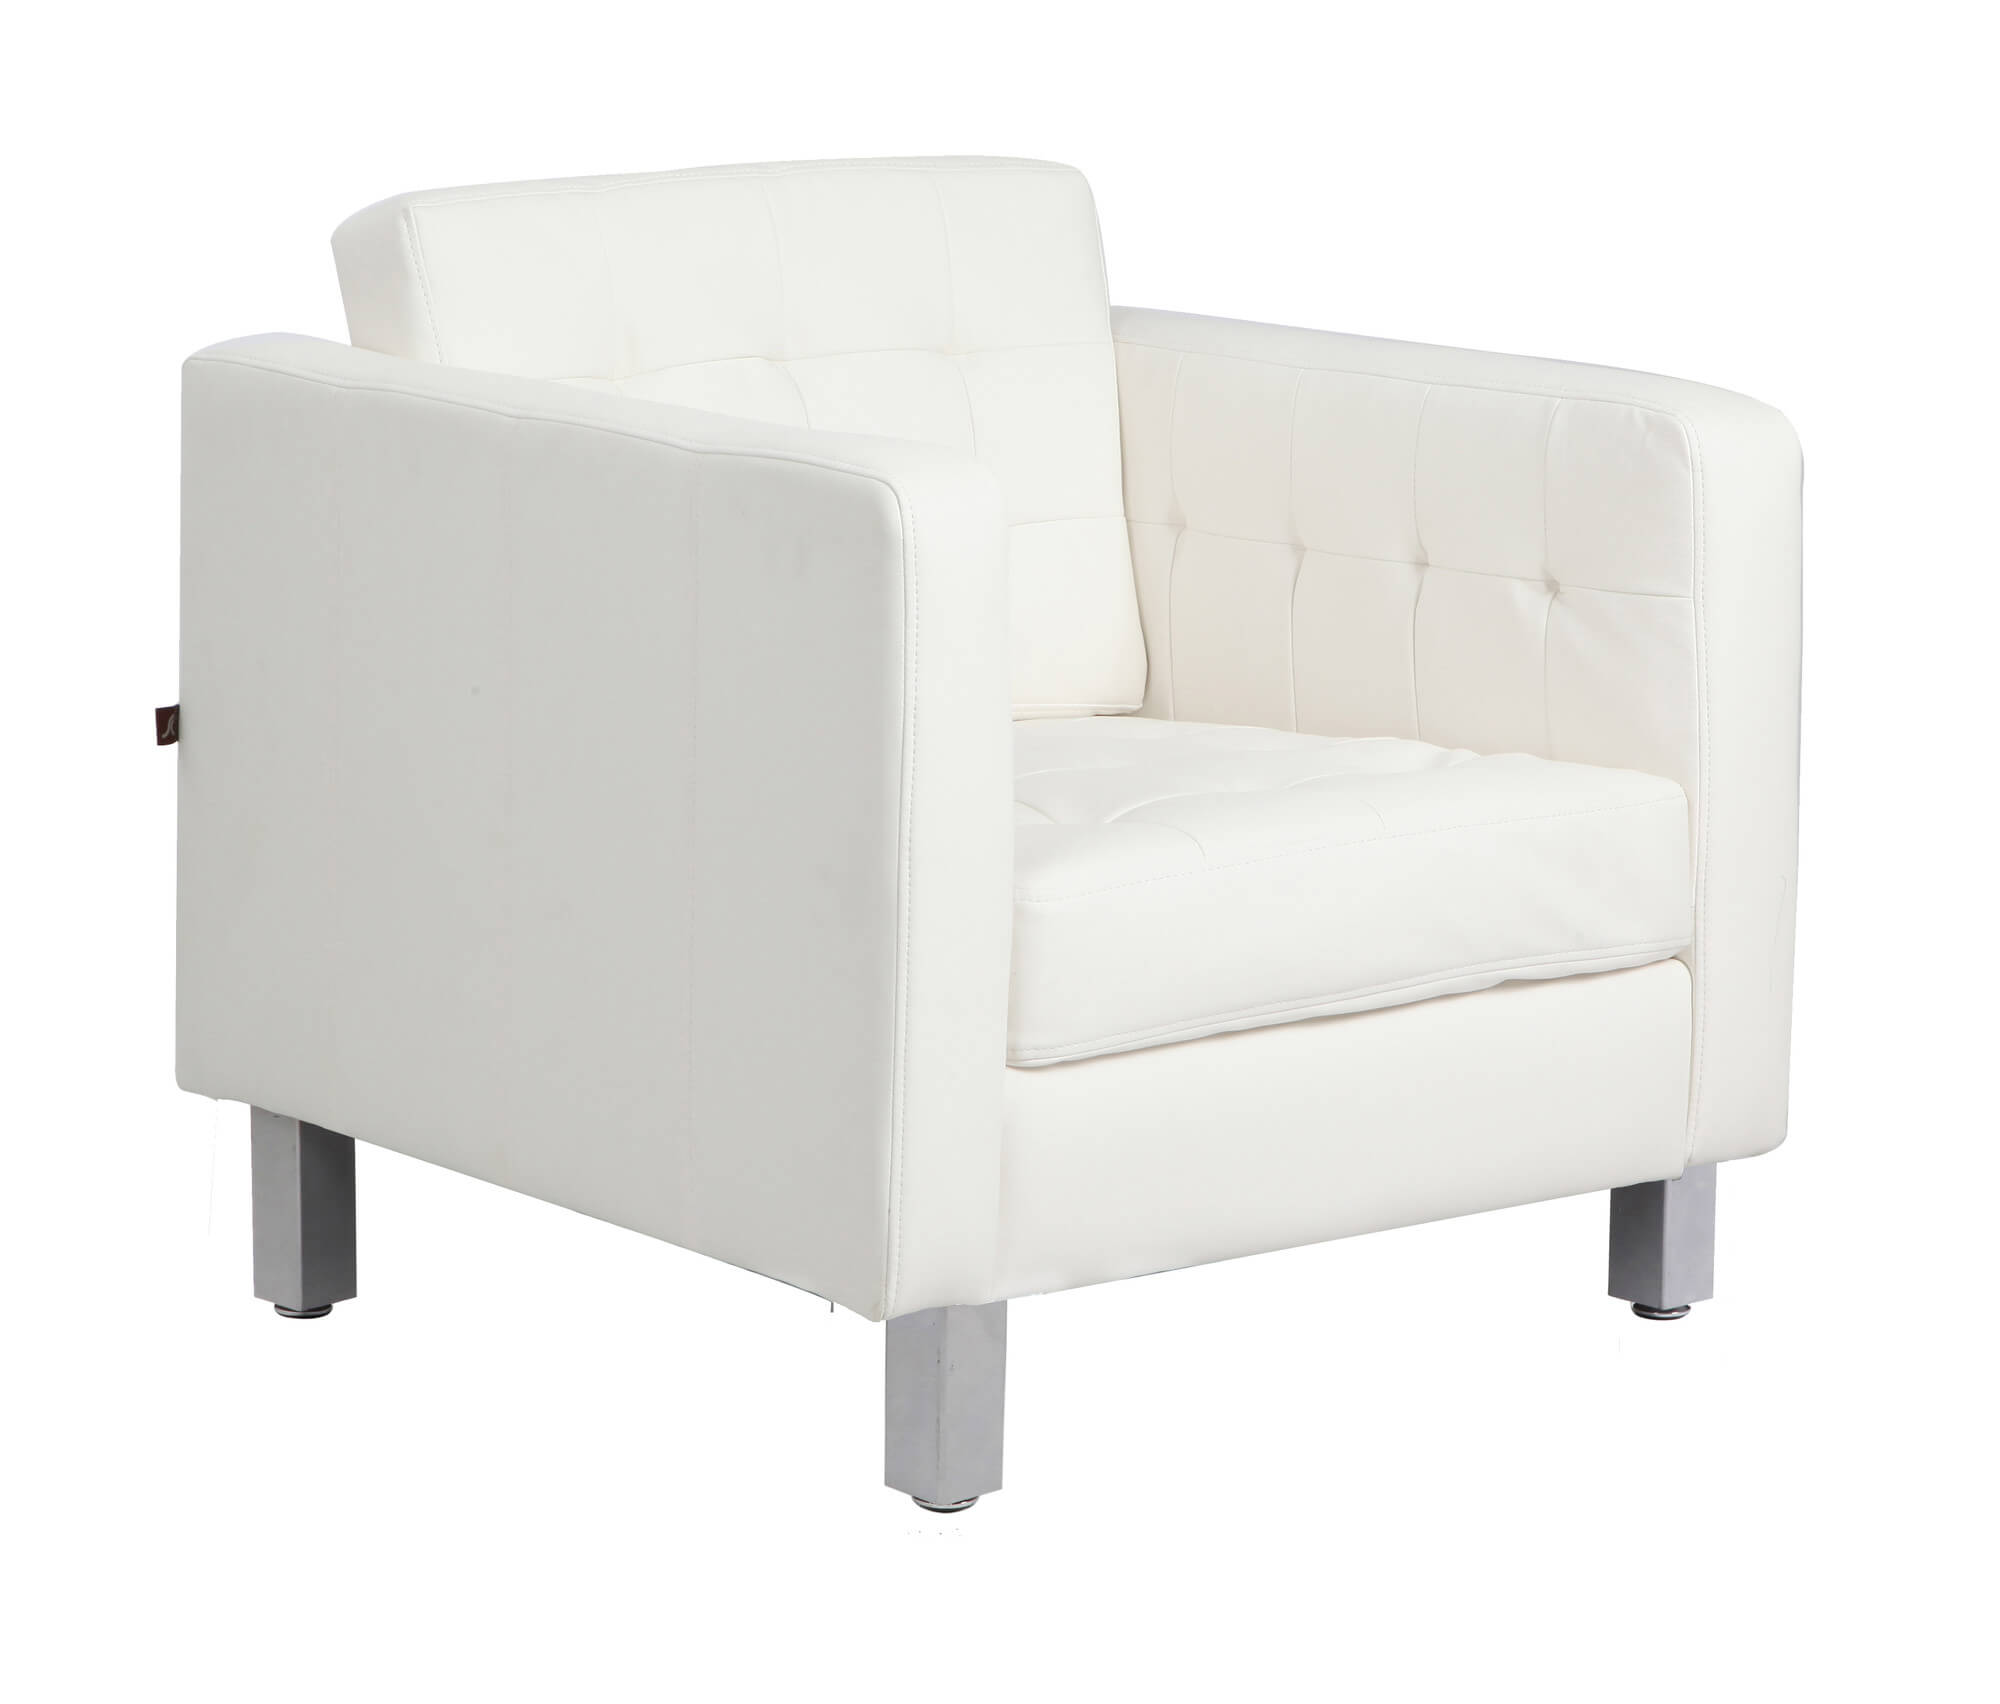 37 white modern accent chairs for the living room for Contemporary seating chairs